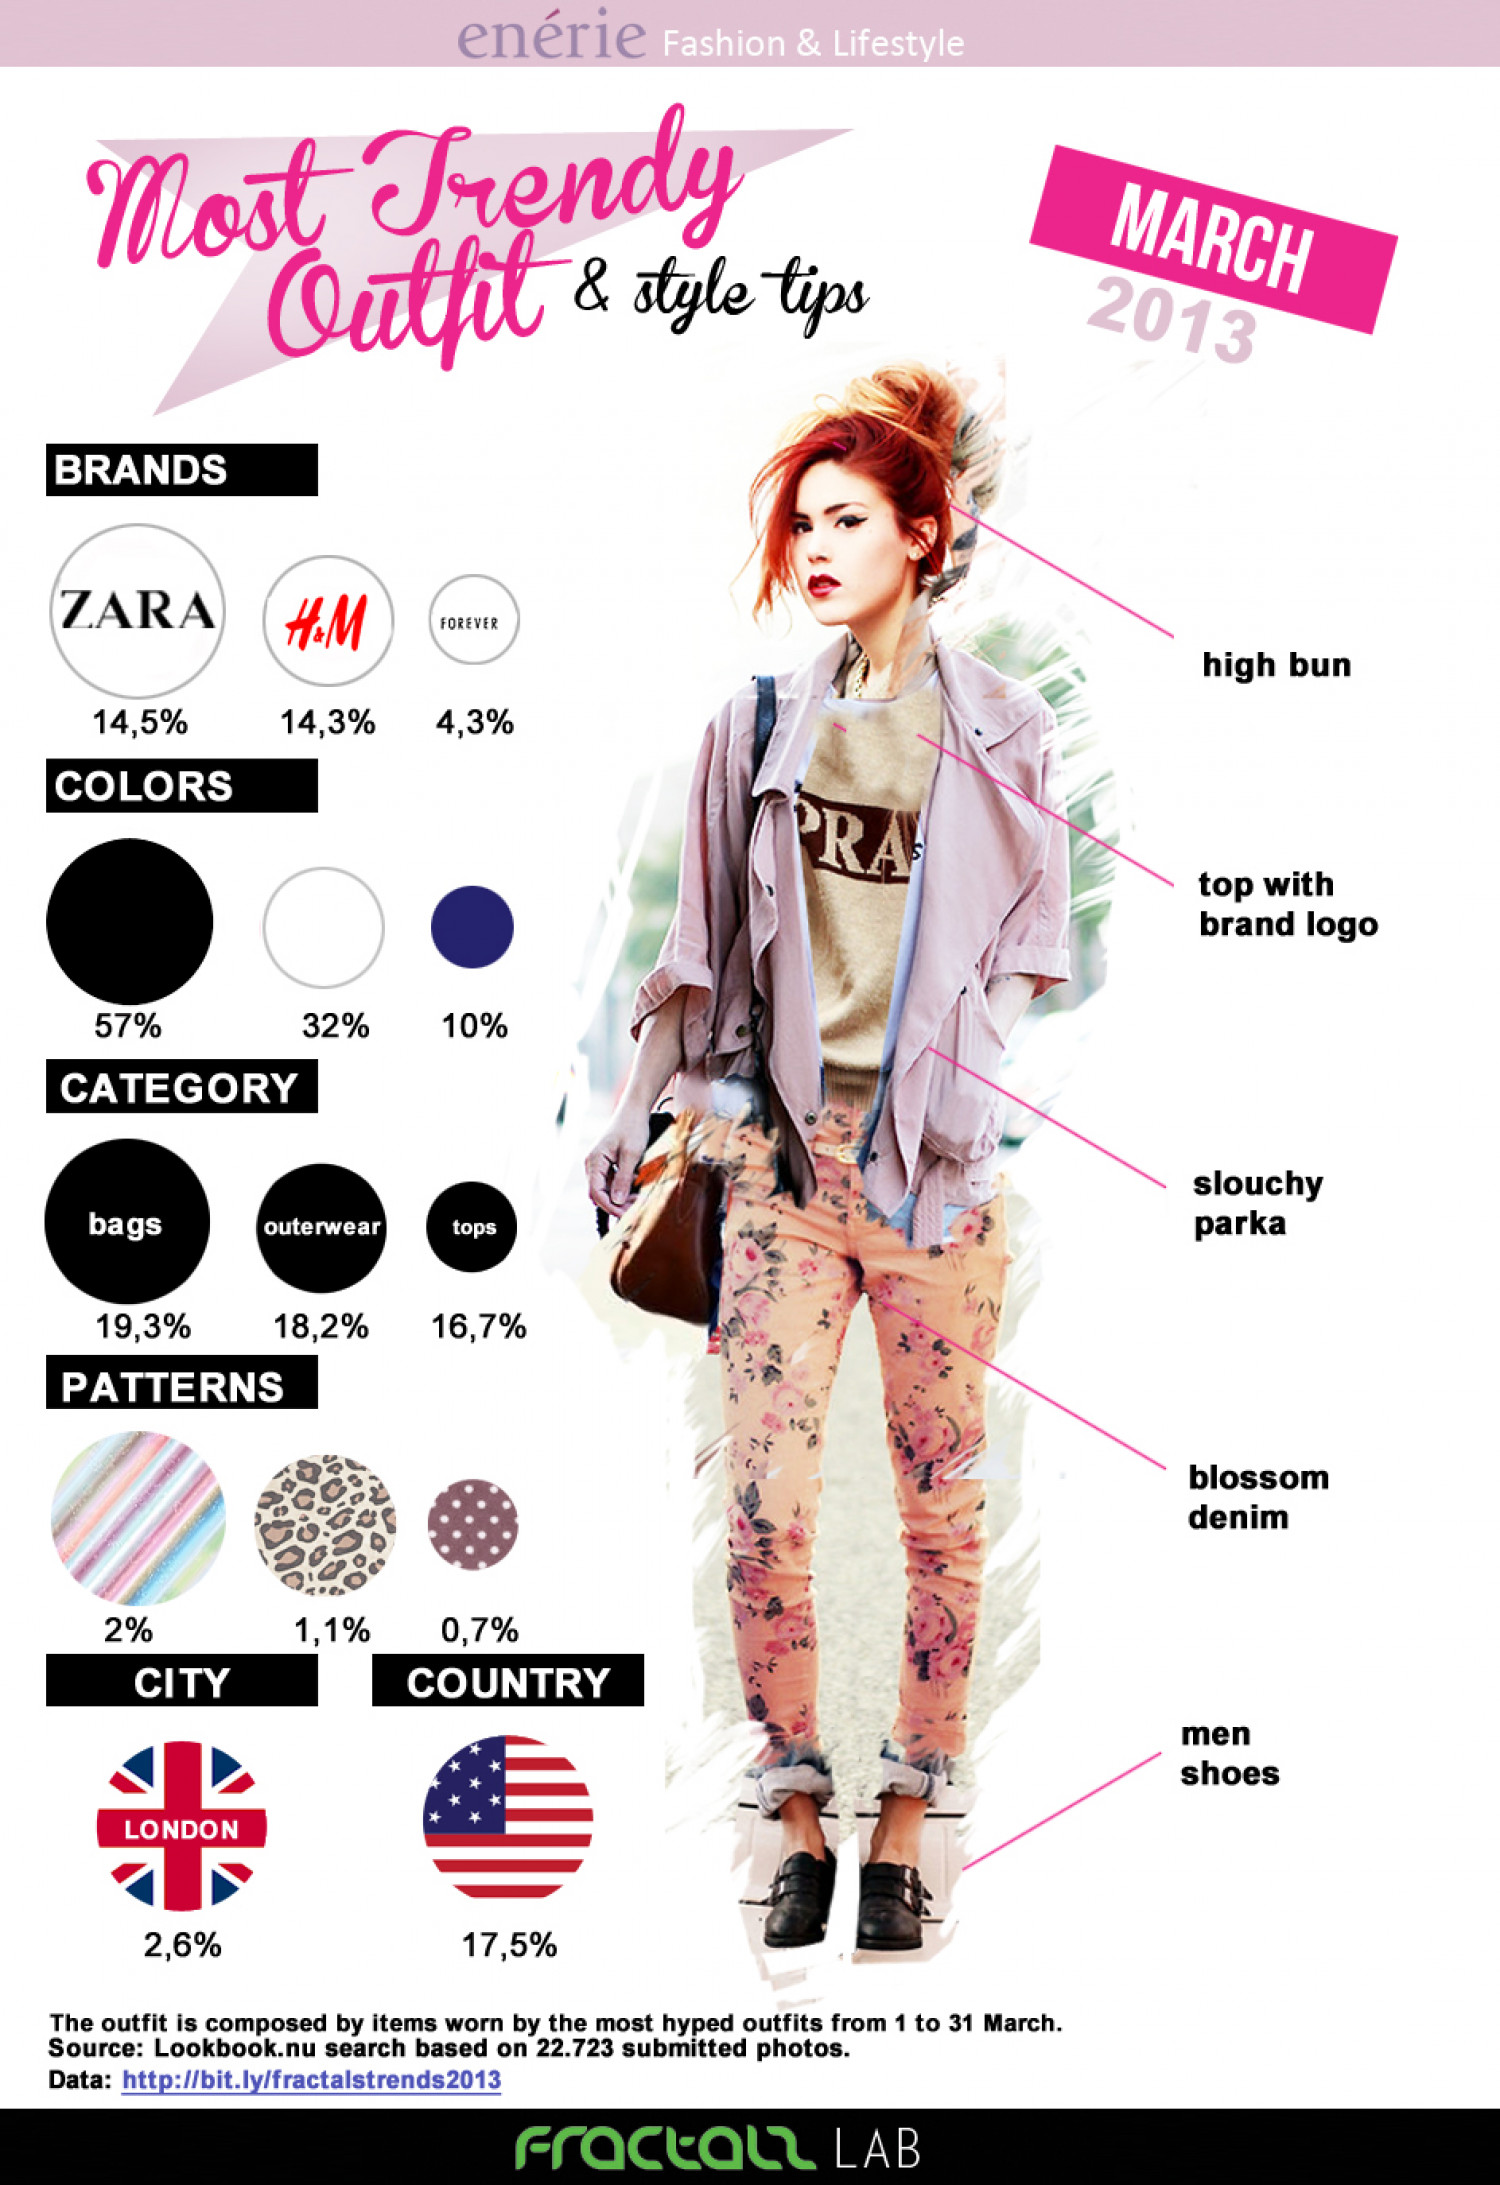 Most Trendy Outfit March 2013 Infographic